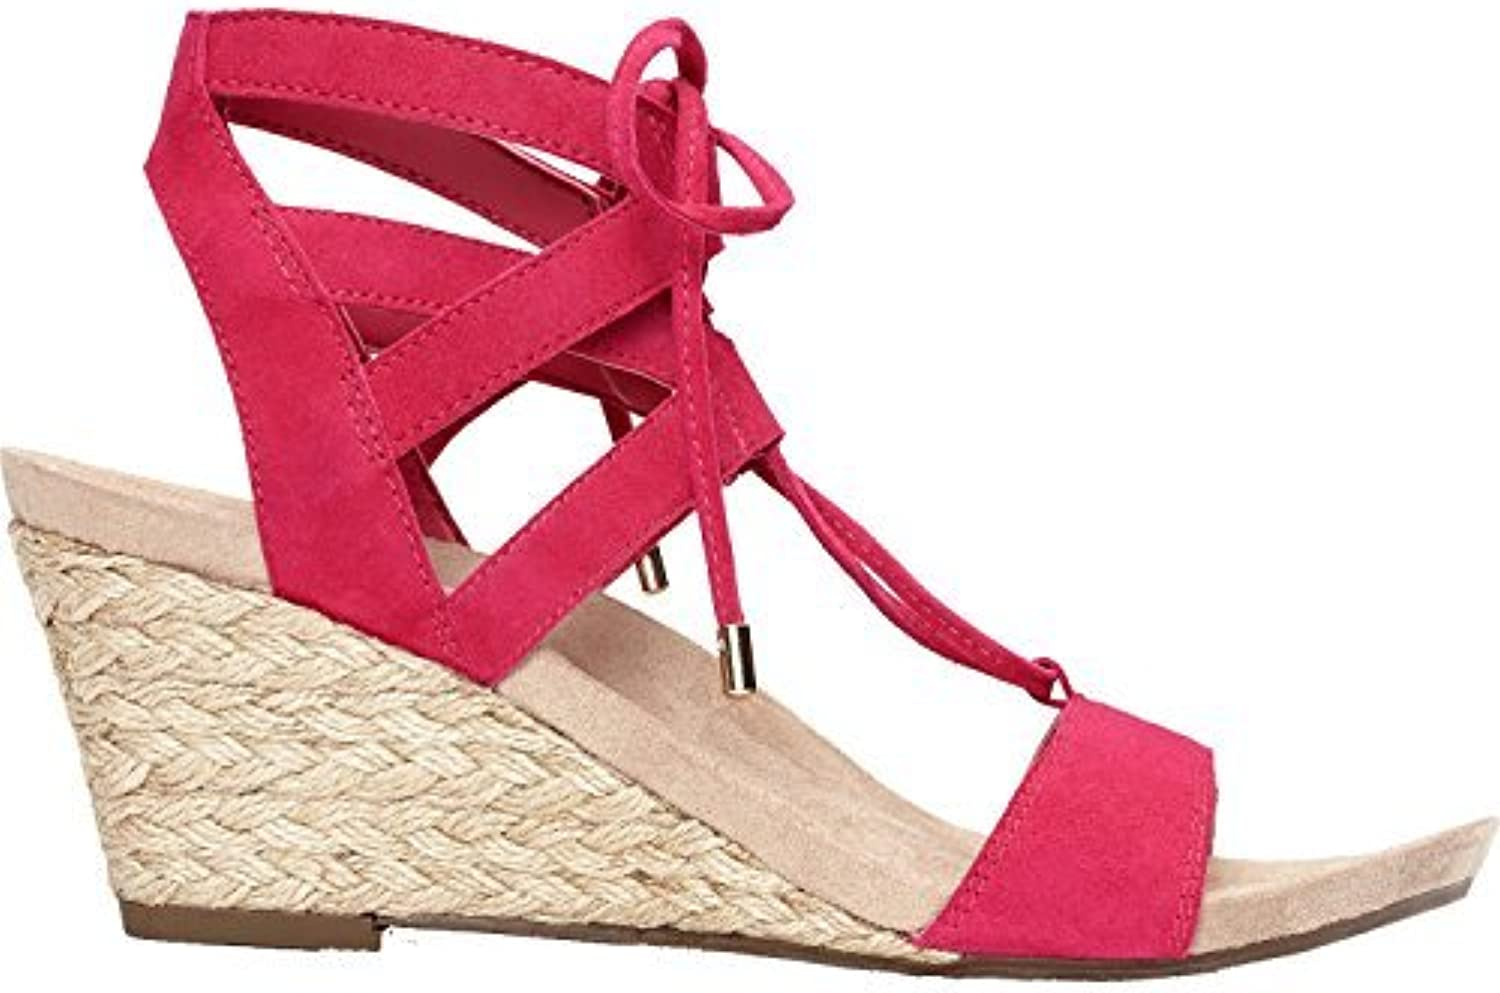 Vionic Womens Noble Tansy Suede Open Toe Casual Platform Sandals